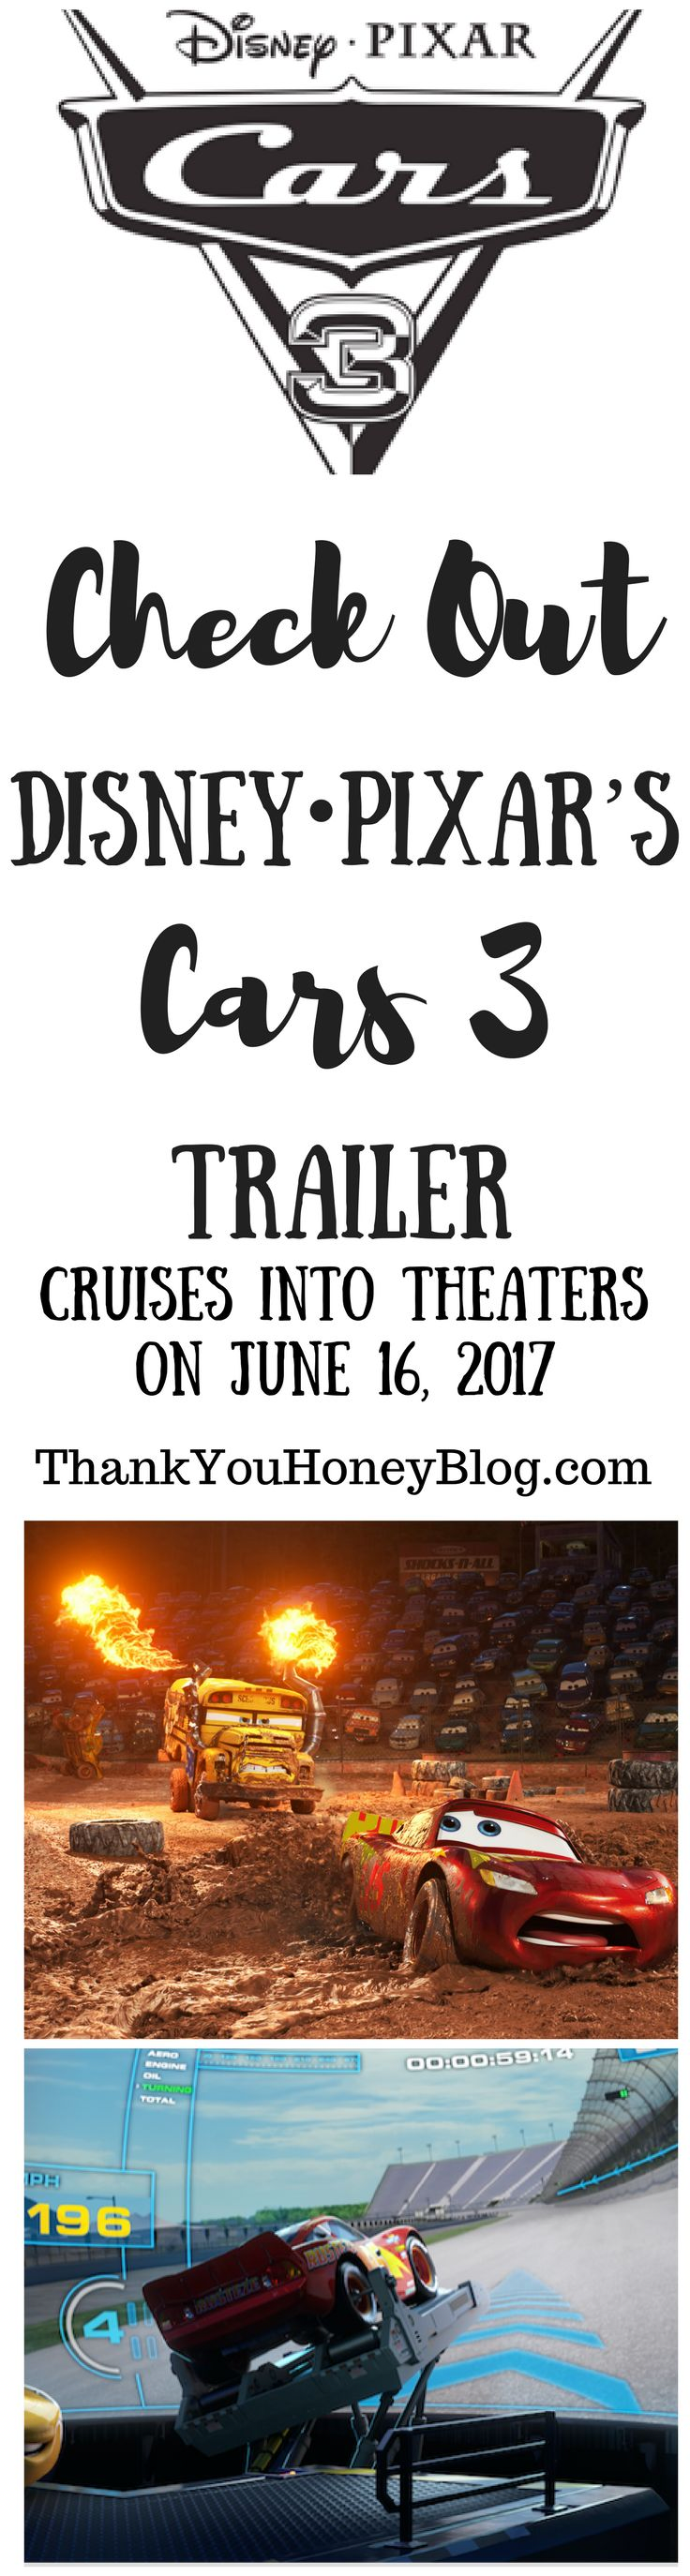 Check out the cars 3 trailer